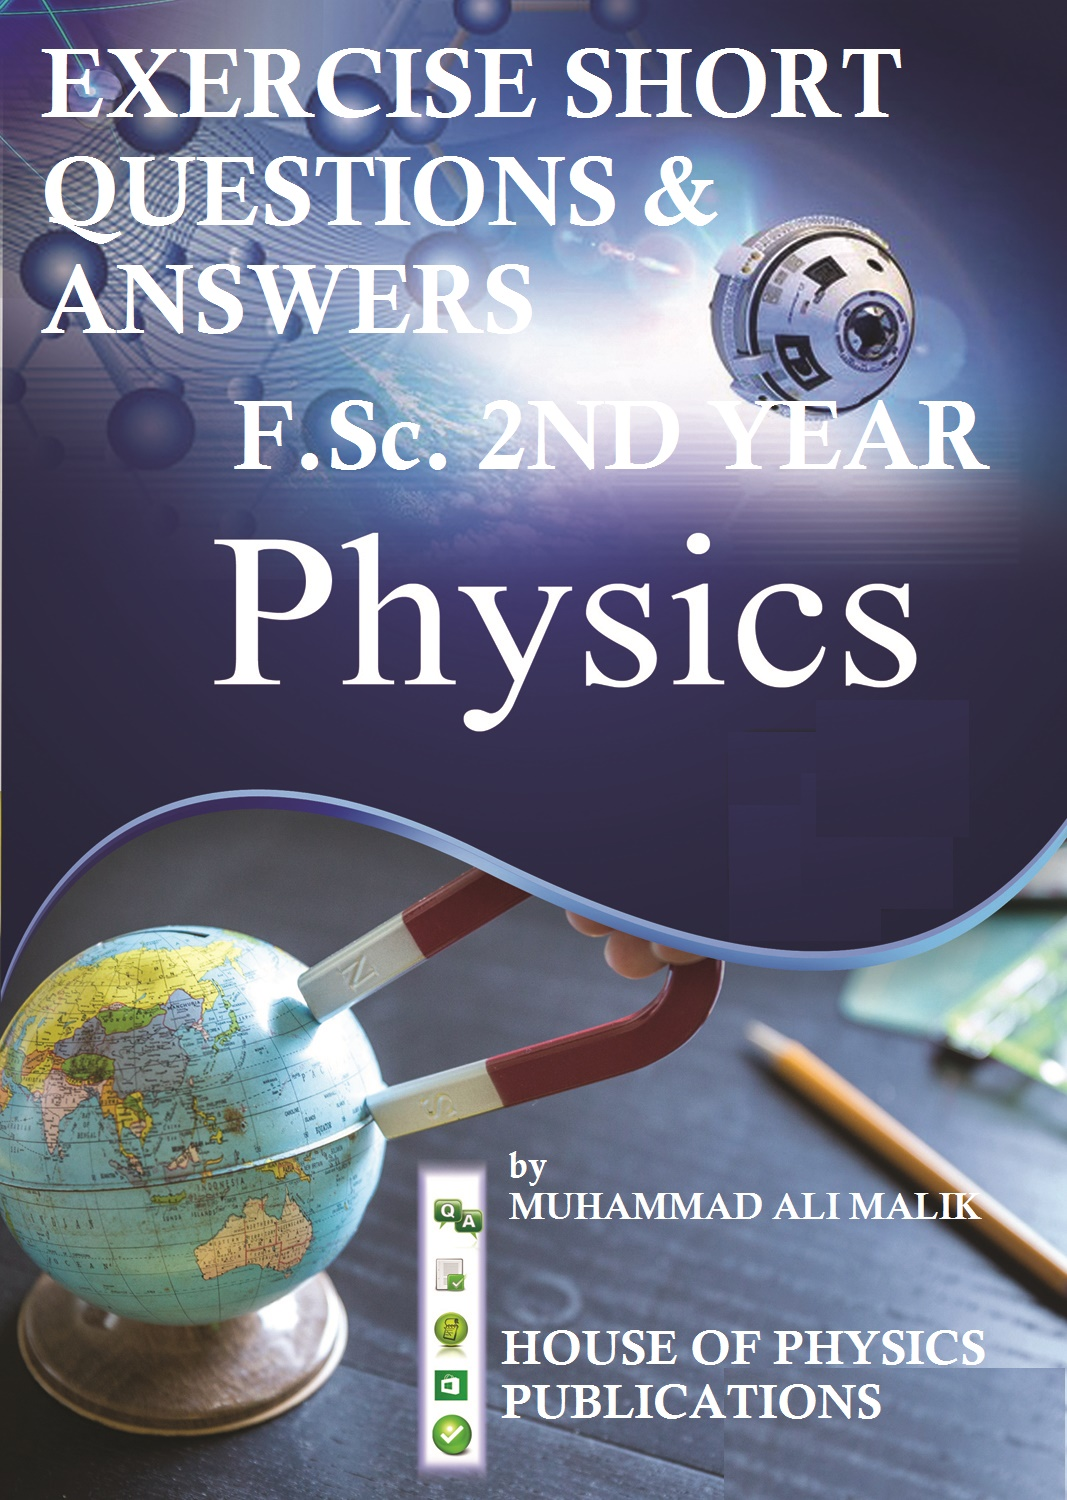 Exercise Short Questions, F Sc  Physics (2ND Year), FREE